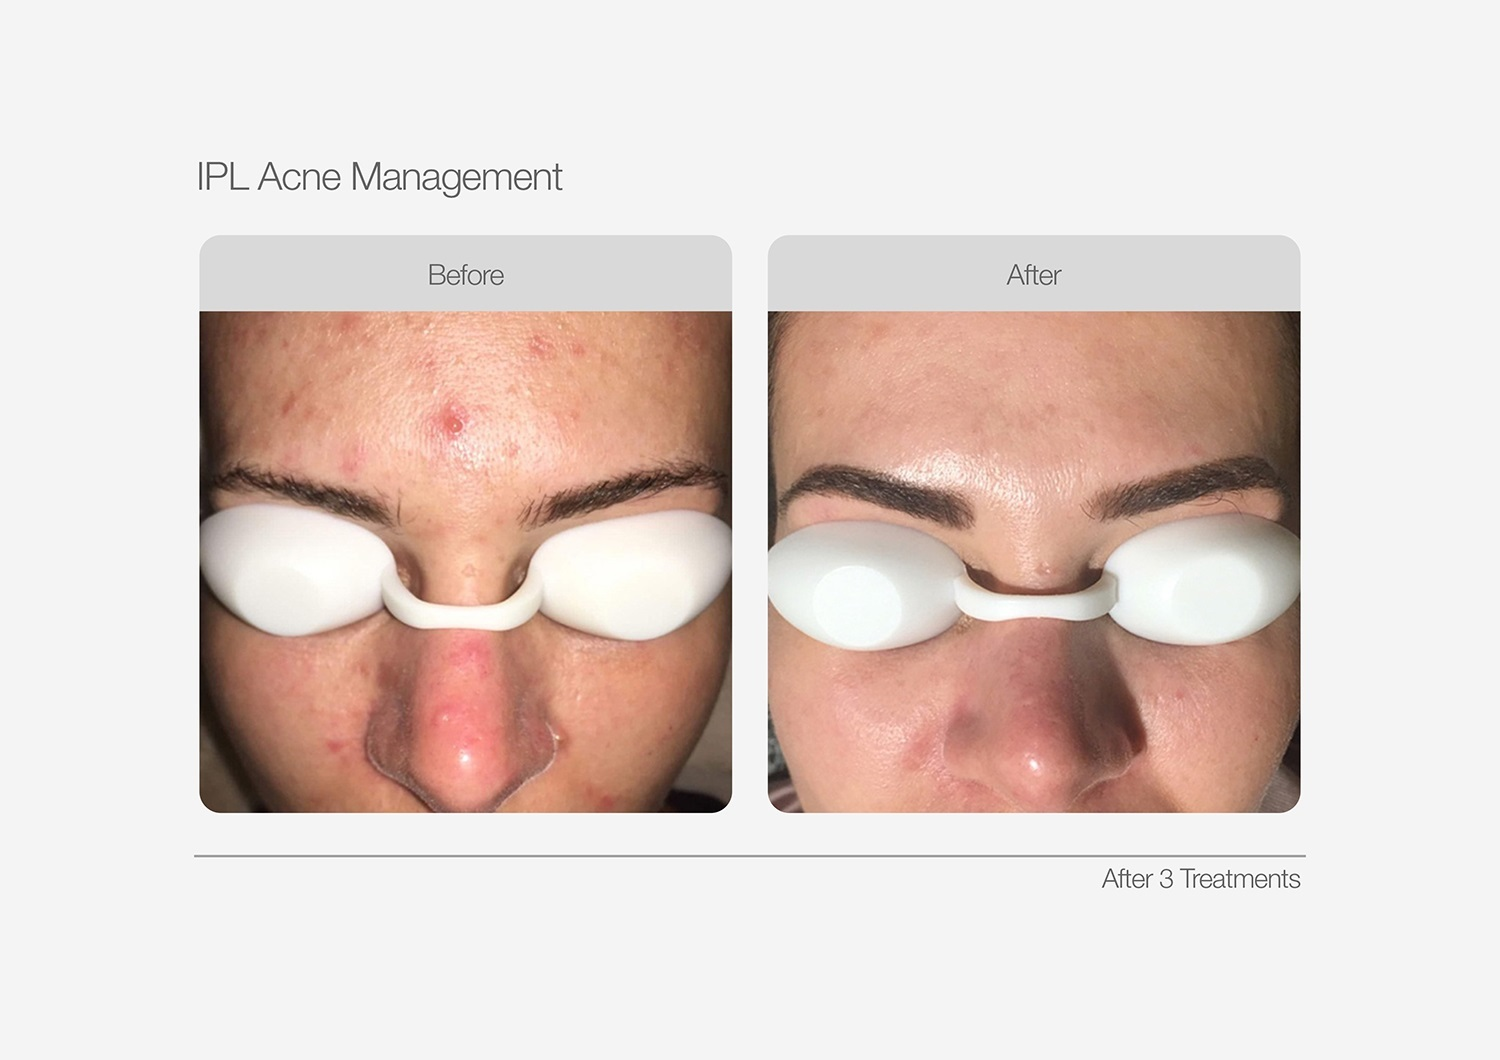 IPL-Acne-Management-Before-After-02